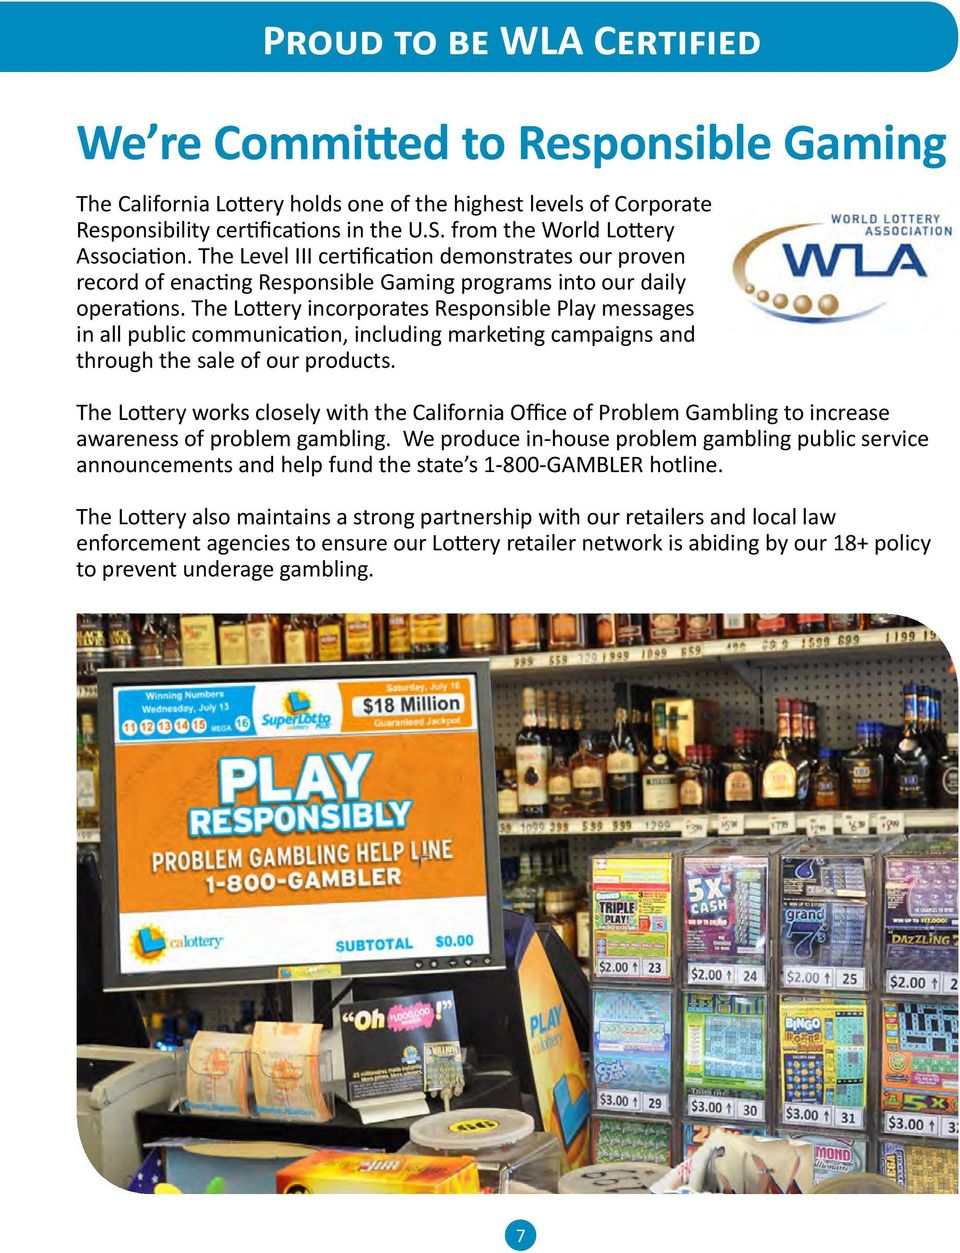 The Lottery incorporates Responsible Play messages in all public communication, including marketing campaigns and through the sale of our products.